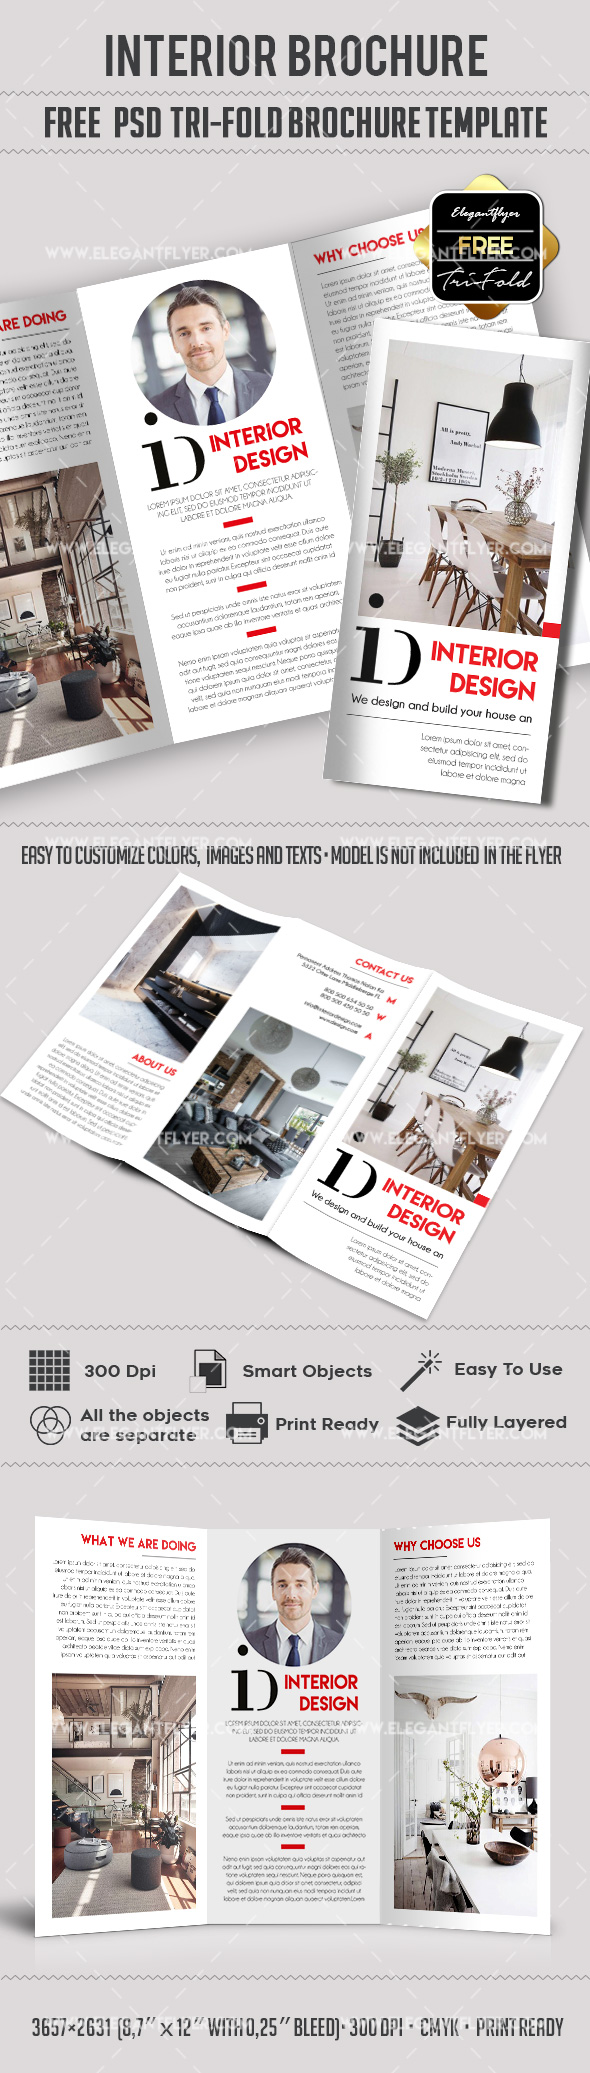 trifold brochure template psd - interior design free tri fold brochure by elegantflyer